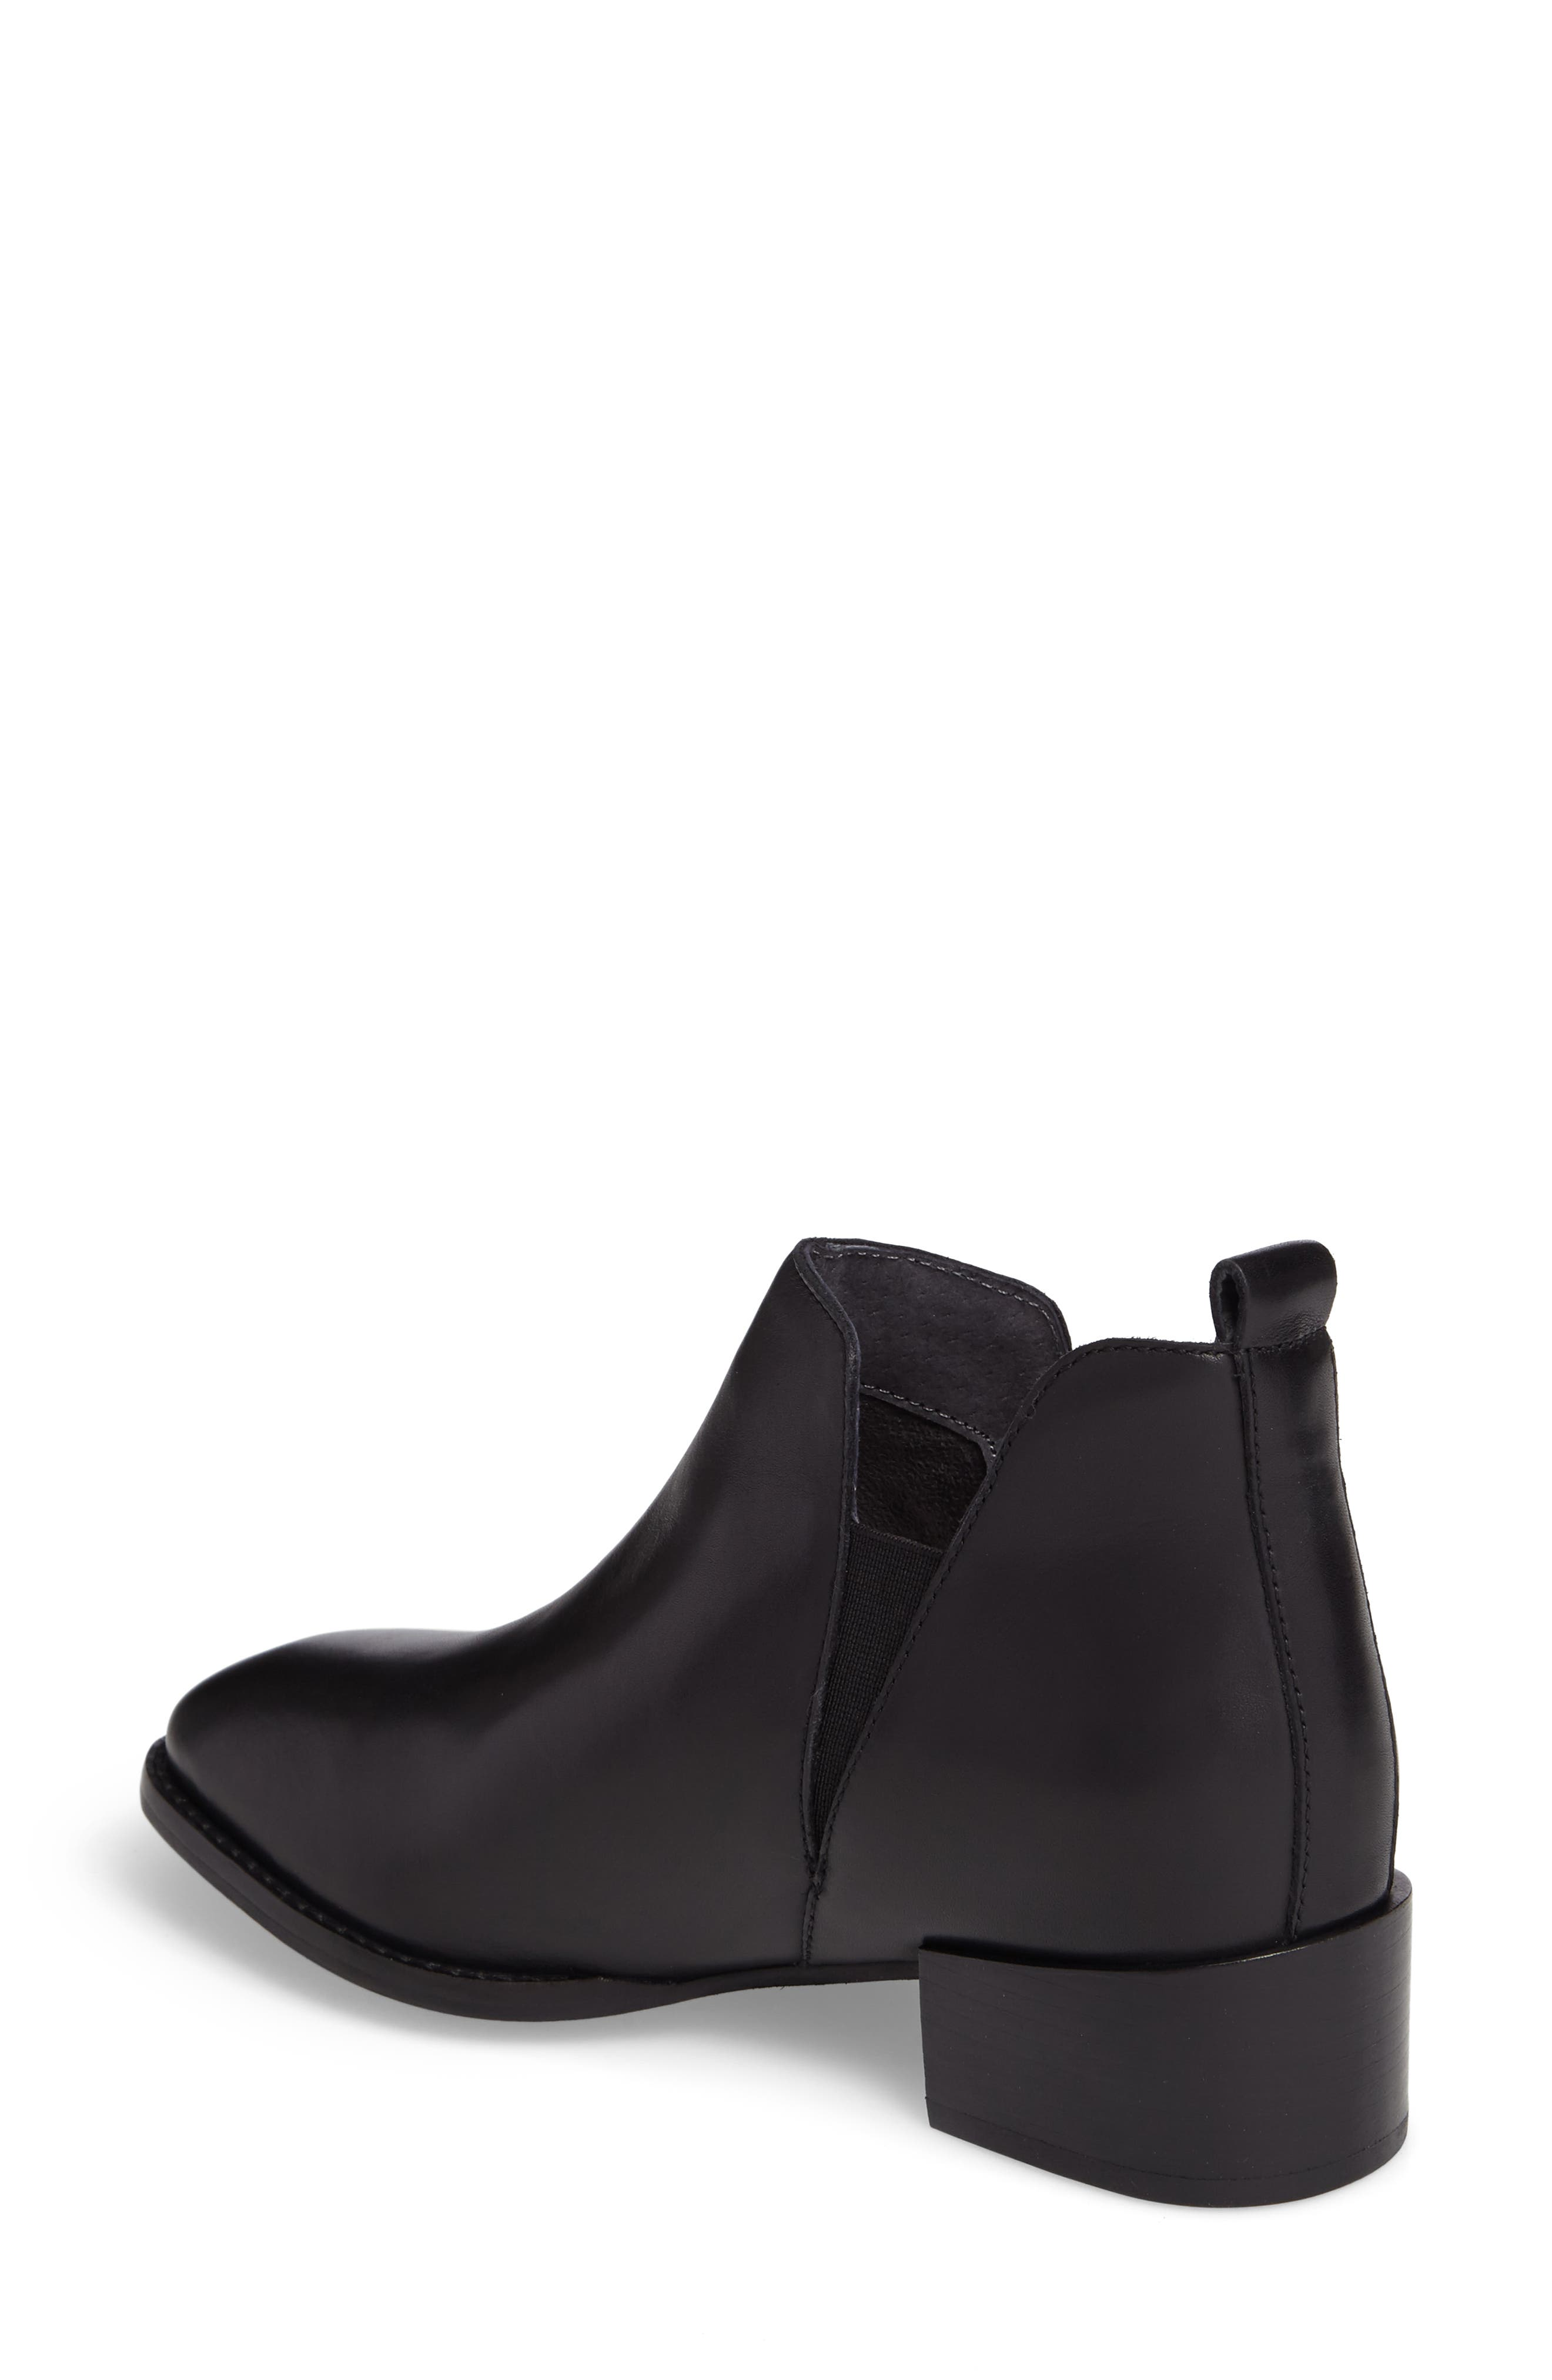 Offstage Boot,                             Alternate thumbnail 2, color,                             BLACK LEATHER